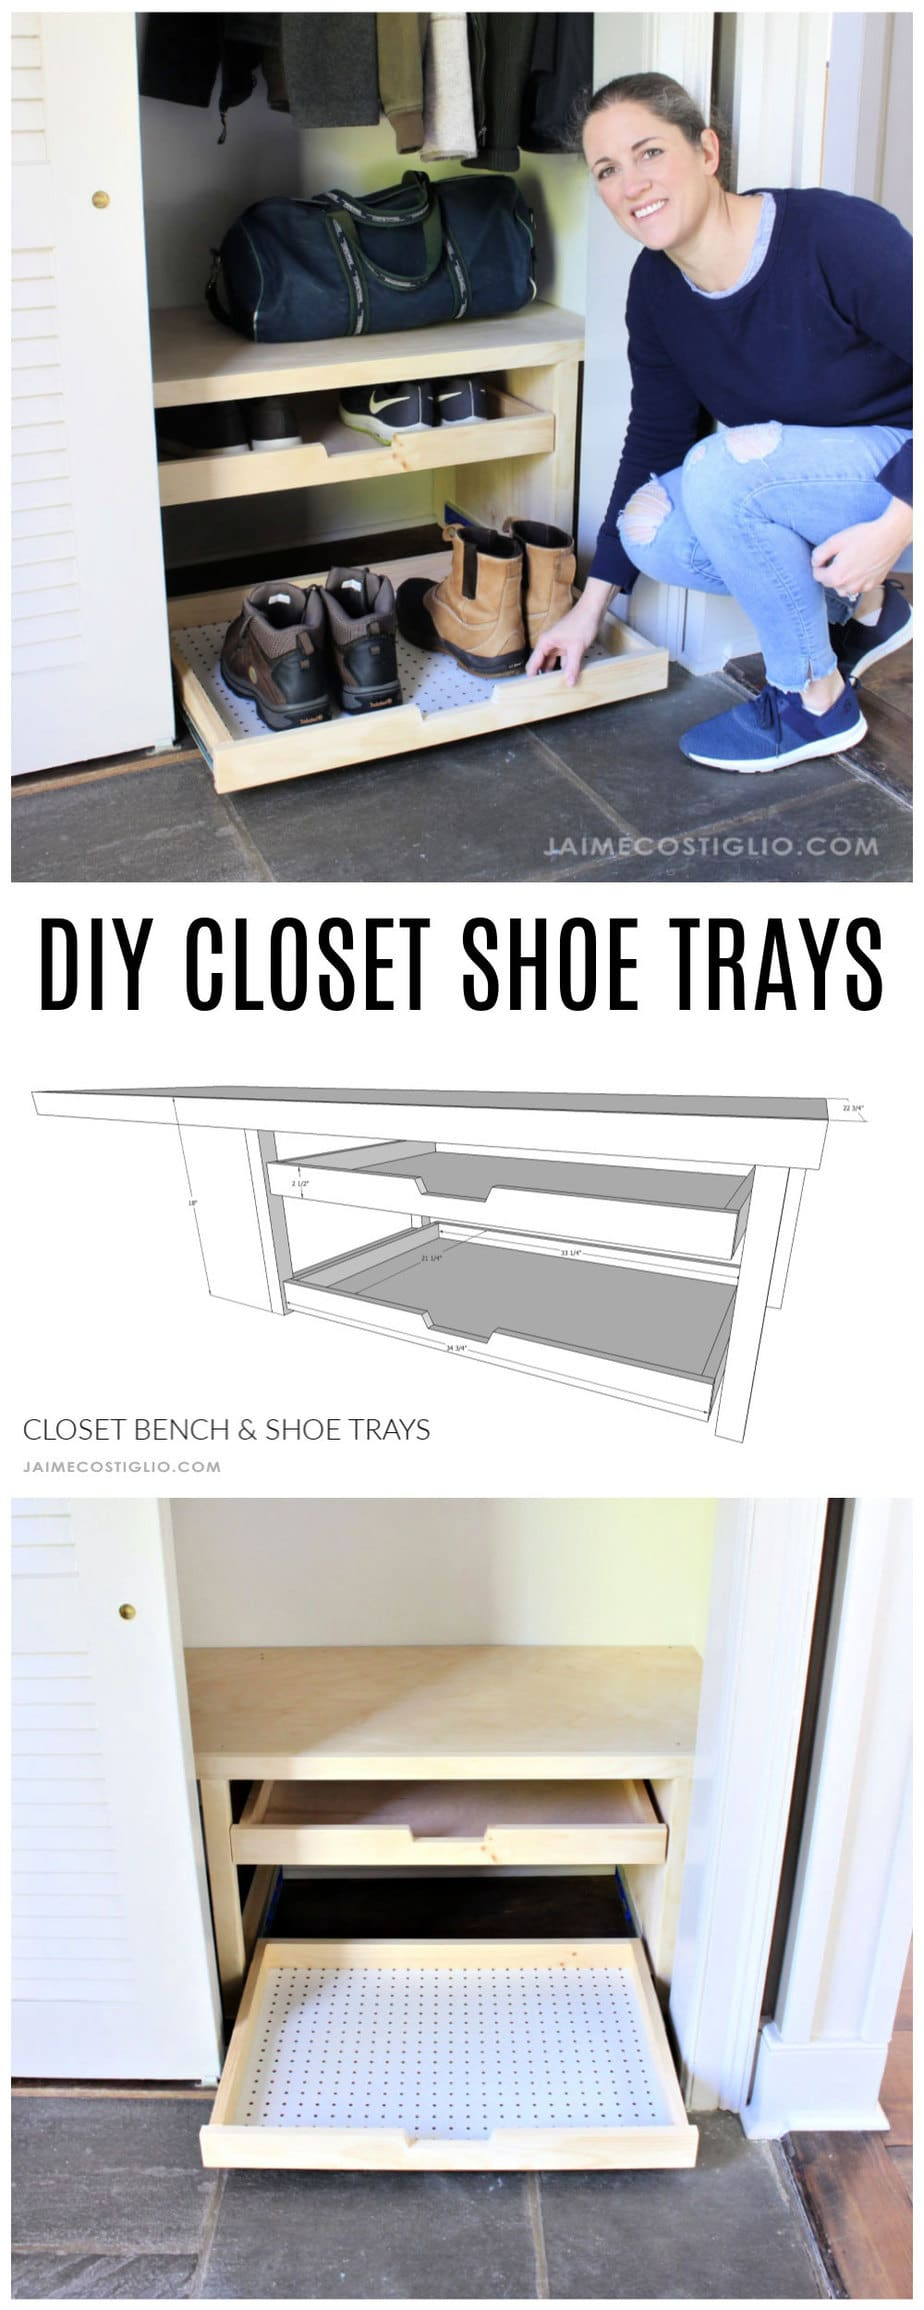 diy closet shoe trays